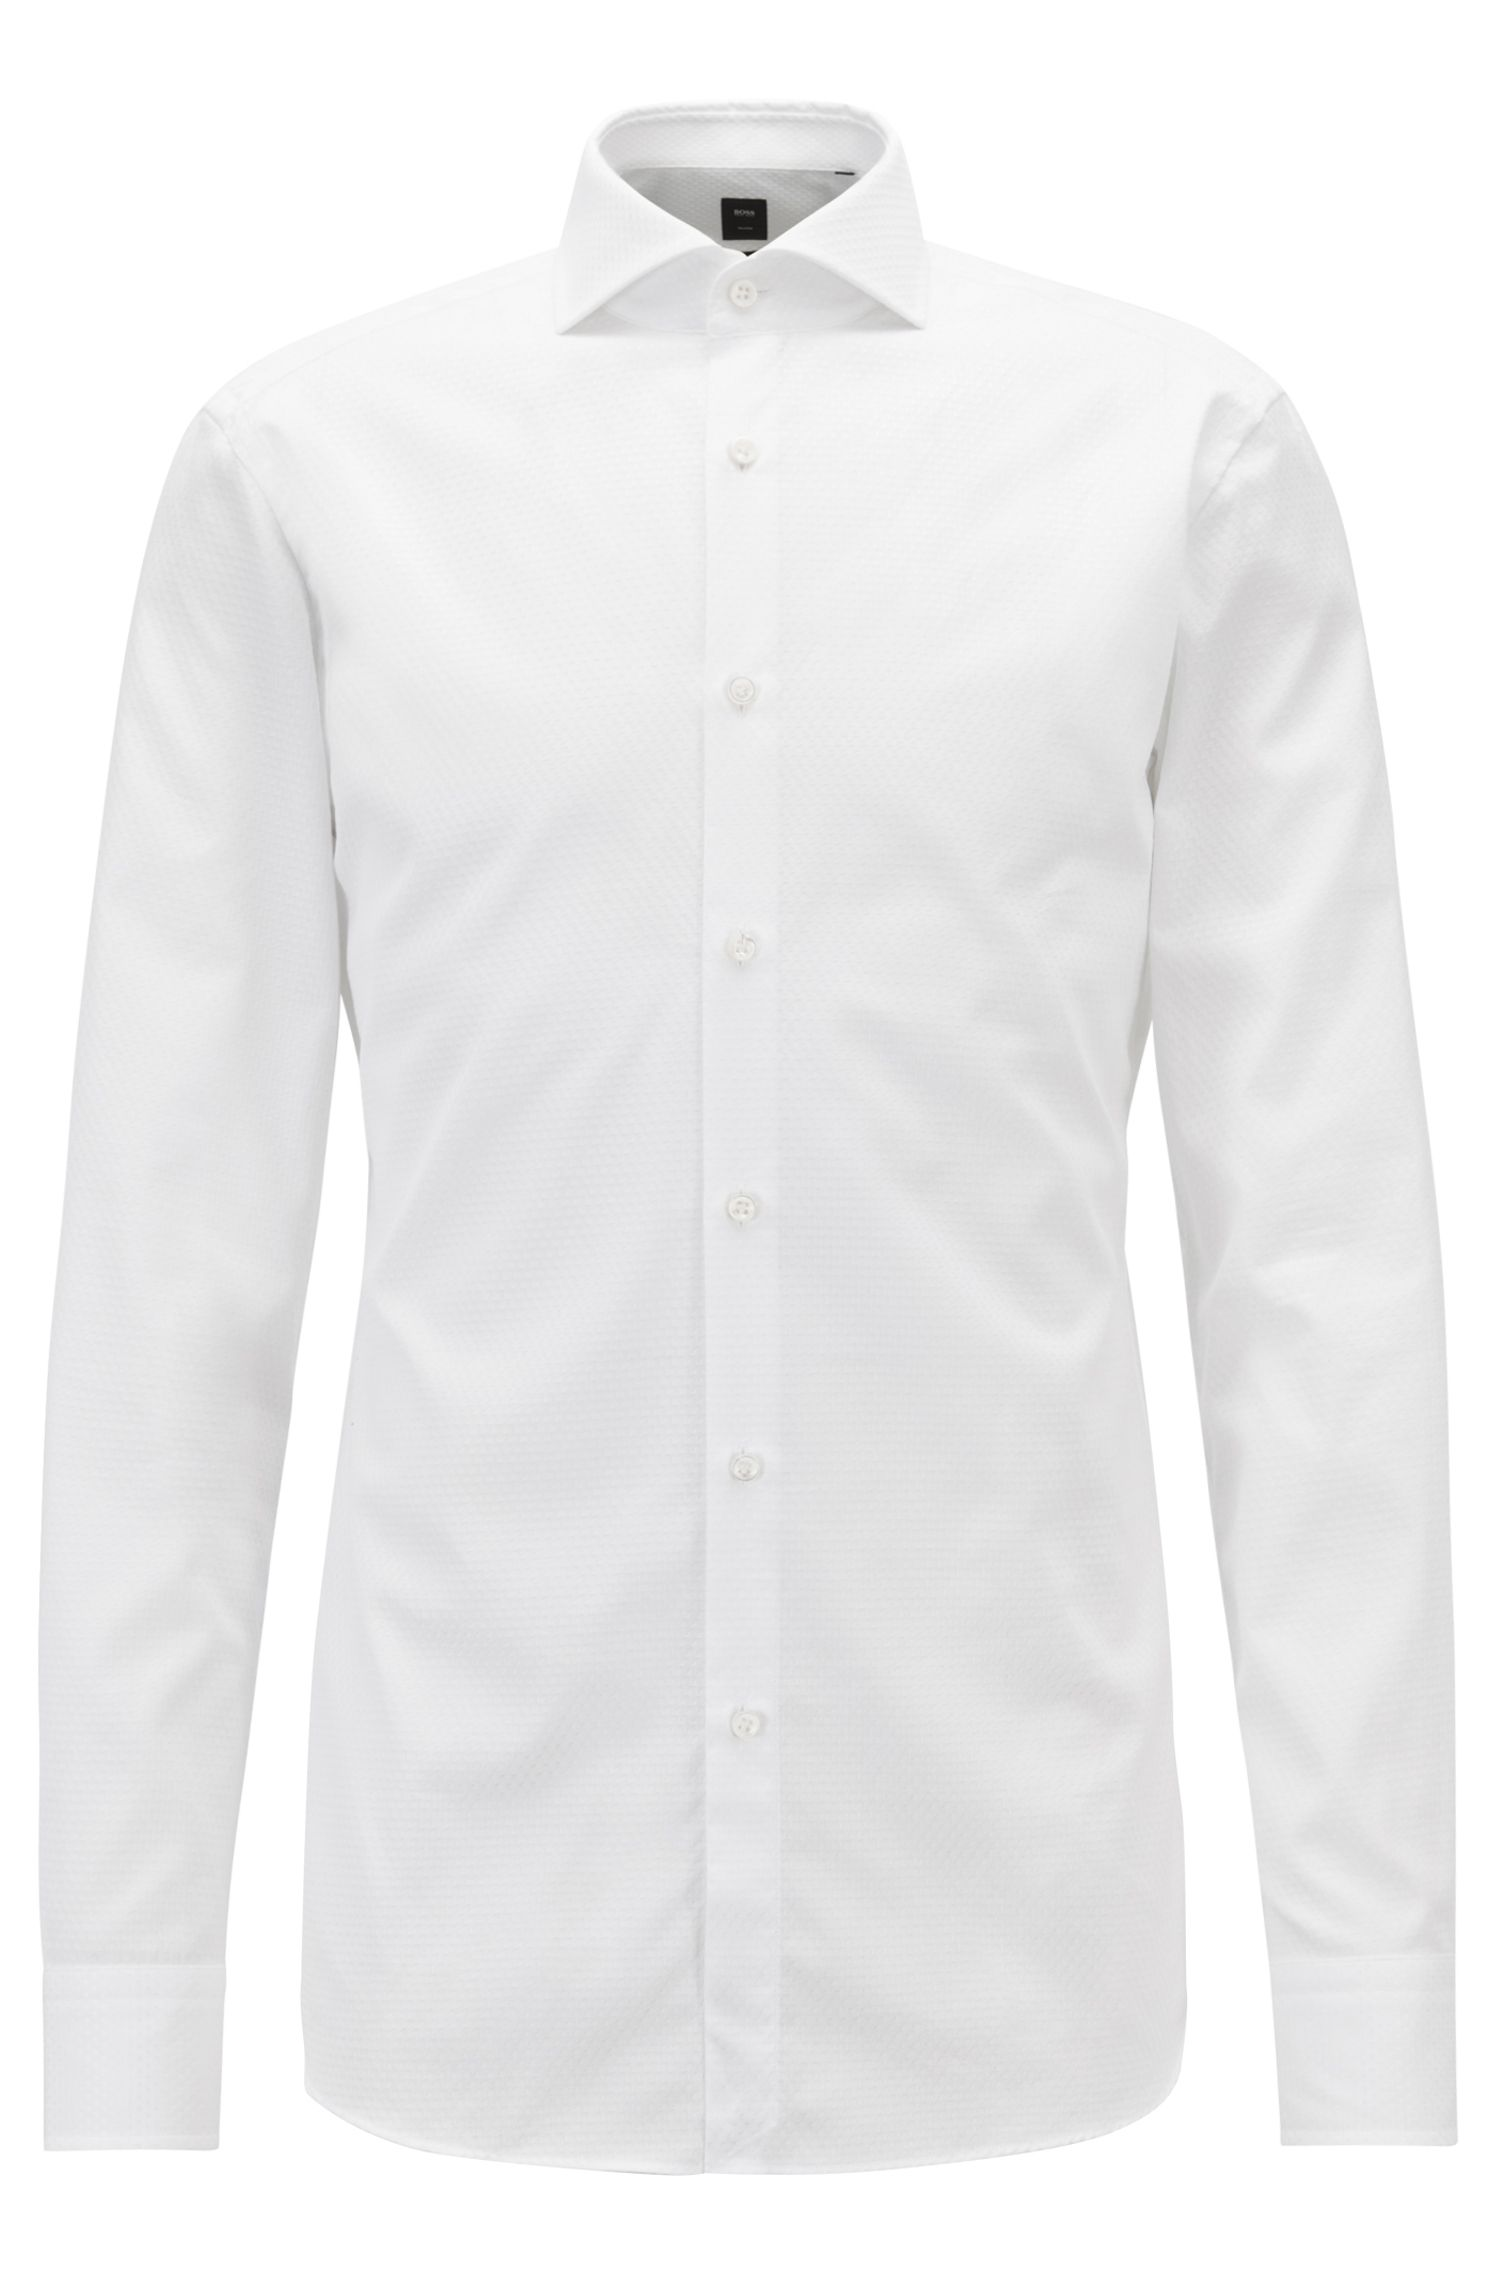 Slim-fit shirt with square motif on cotton jacquard, White